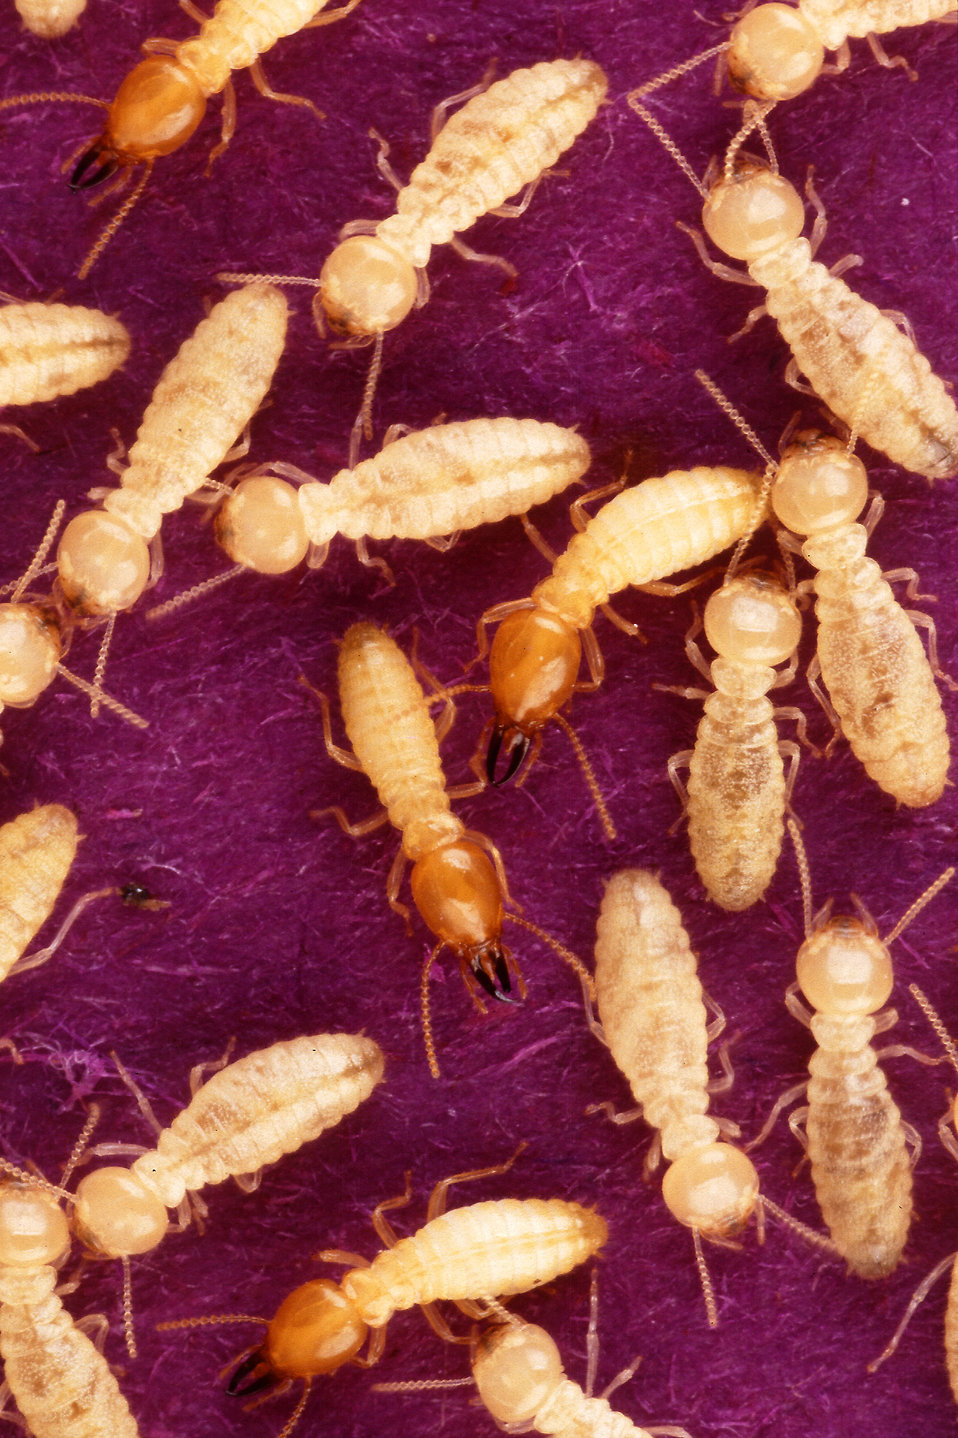 Formosan subterranean termites : Free Stock Photo